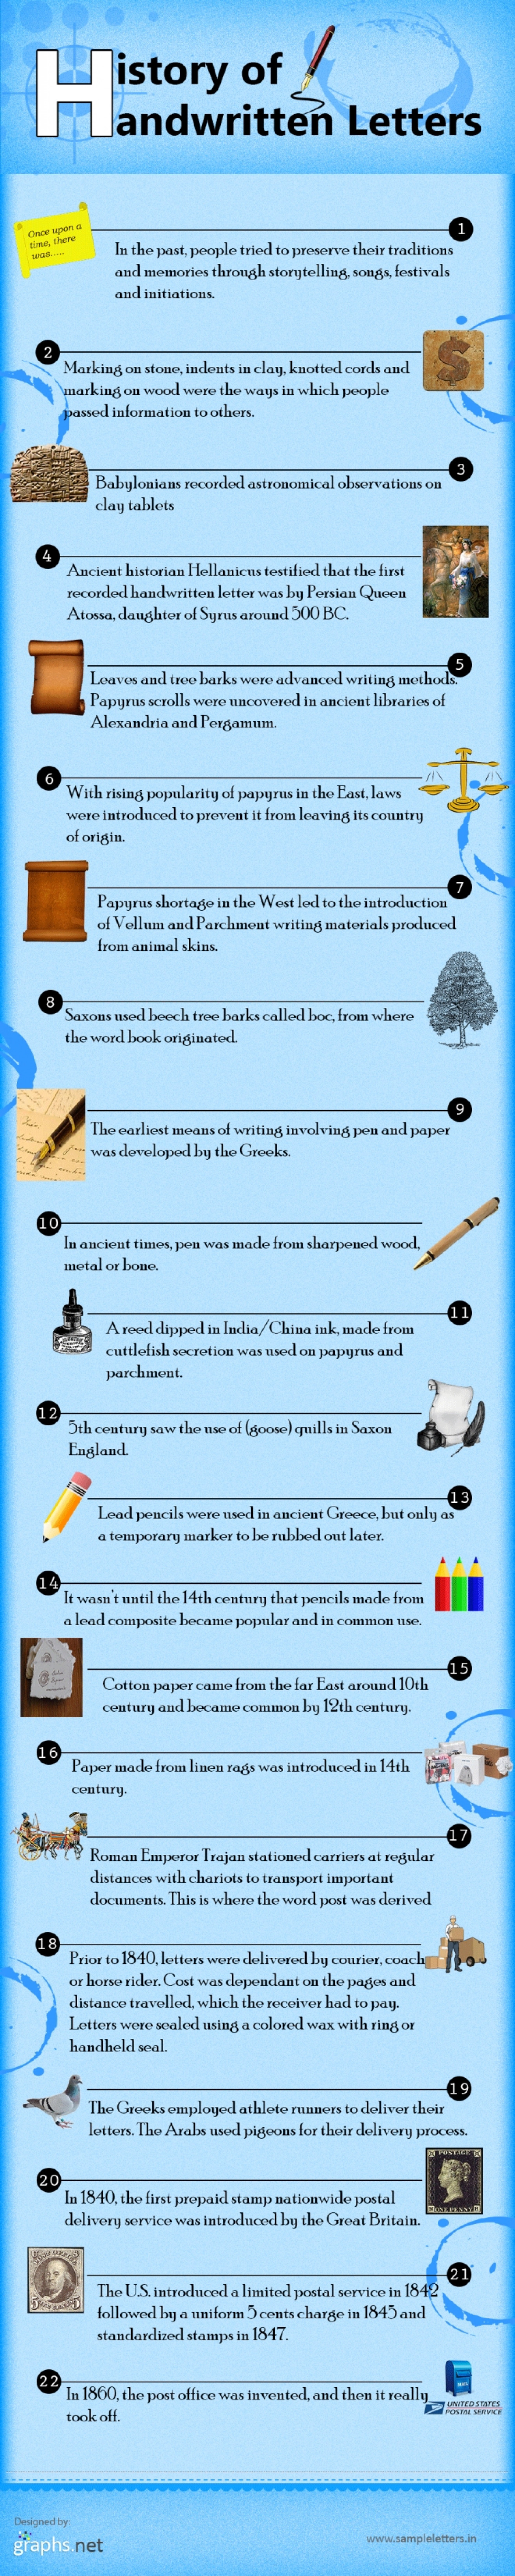 Handwritten Letters History Infographic